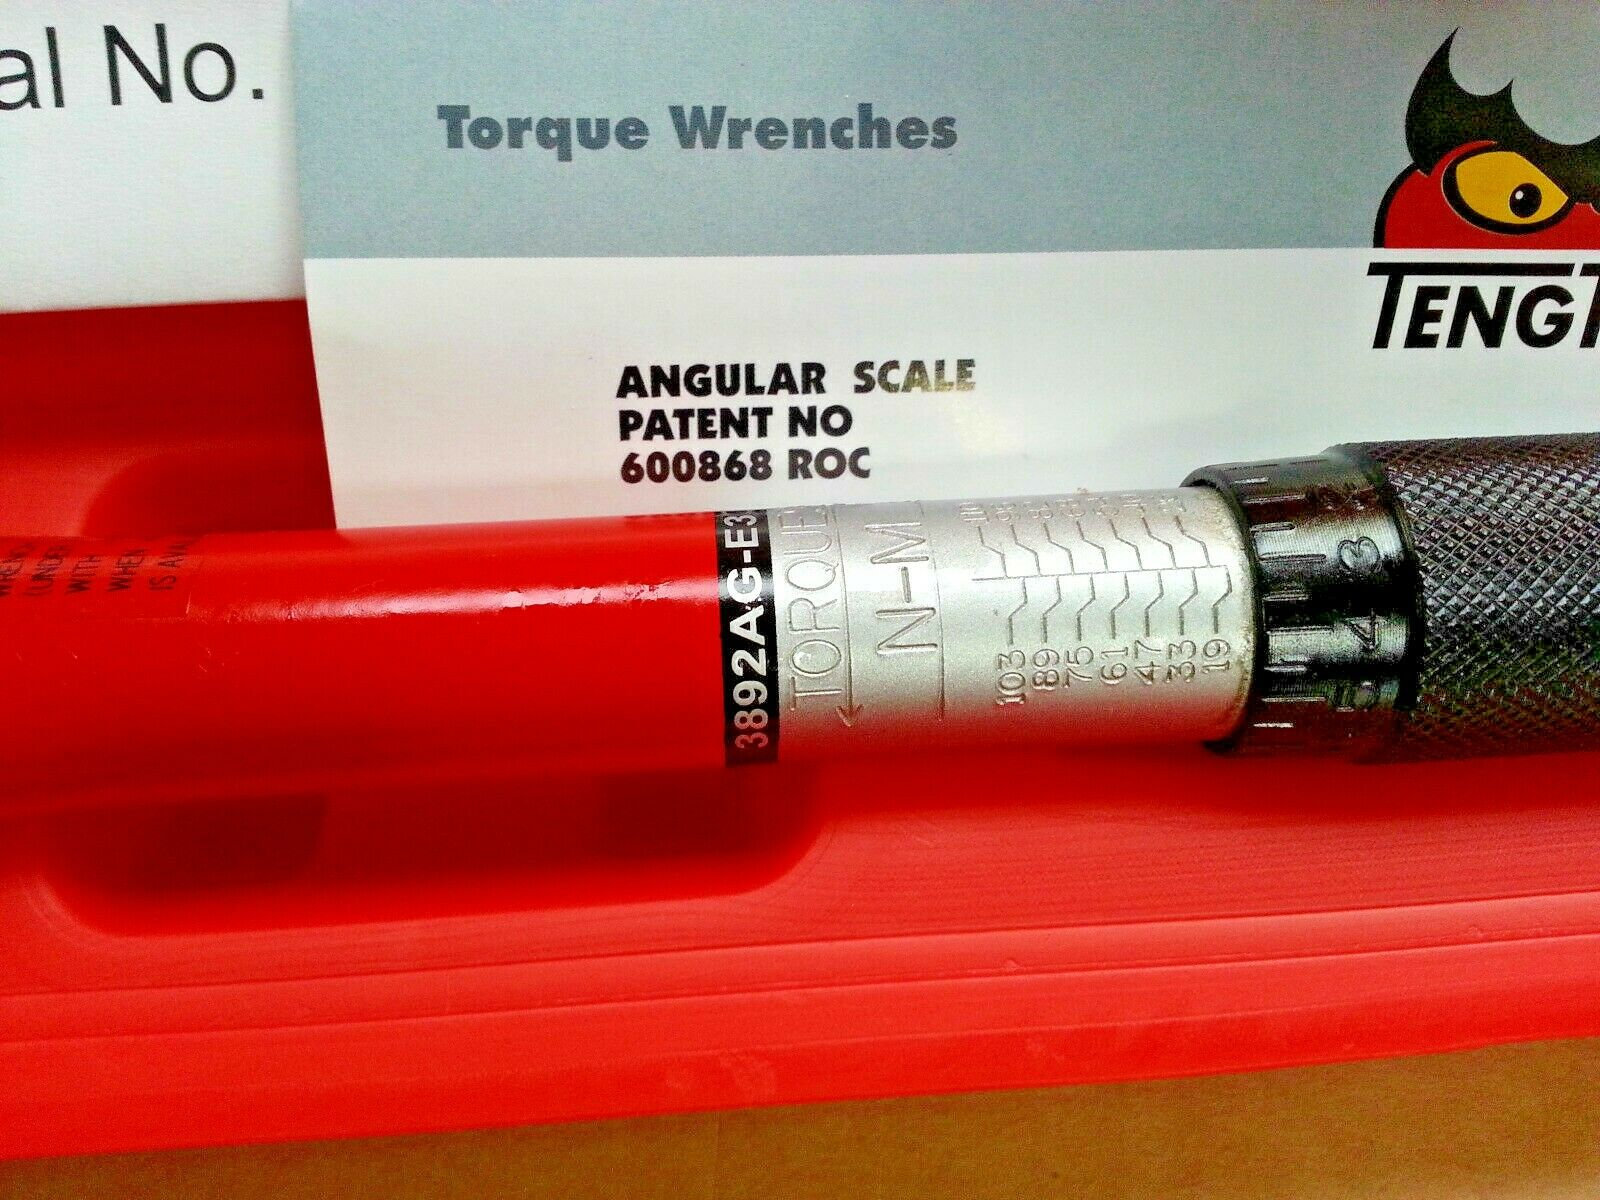 Drive Tools 38 Teng Central 20 – E3 Torque Wrench 110nm 3892ag 13KcTlJF